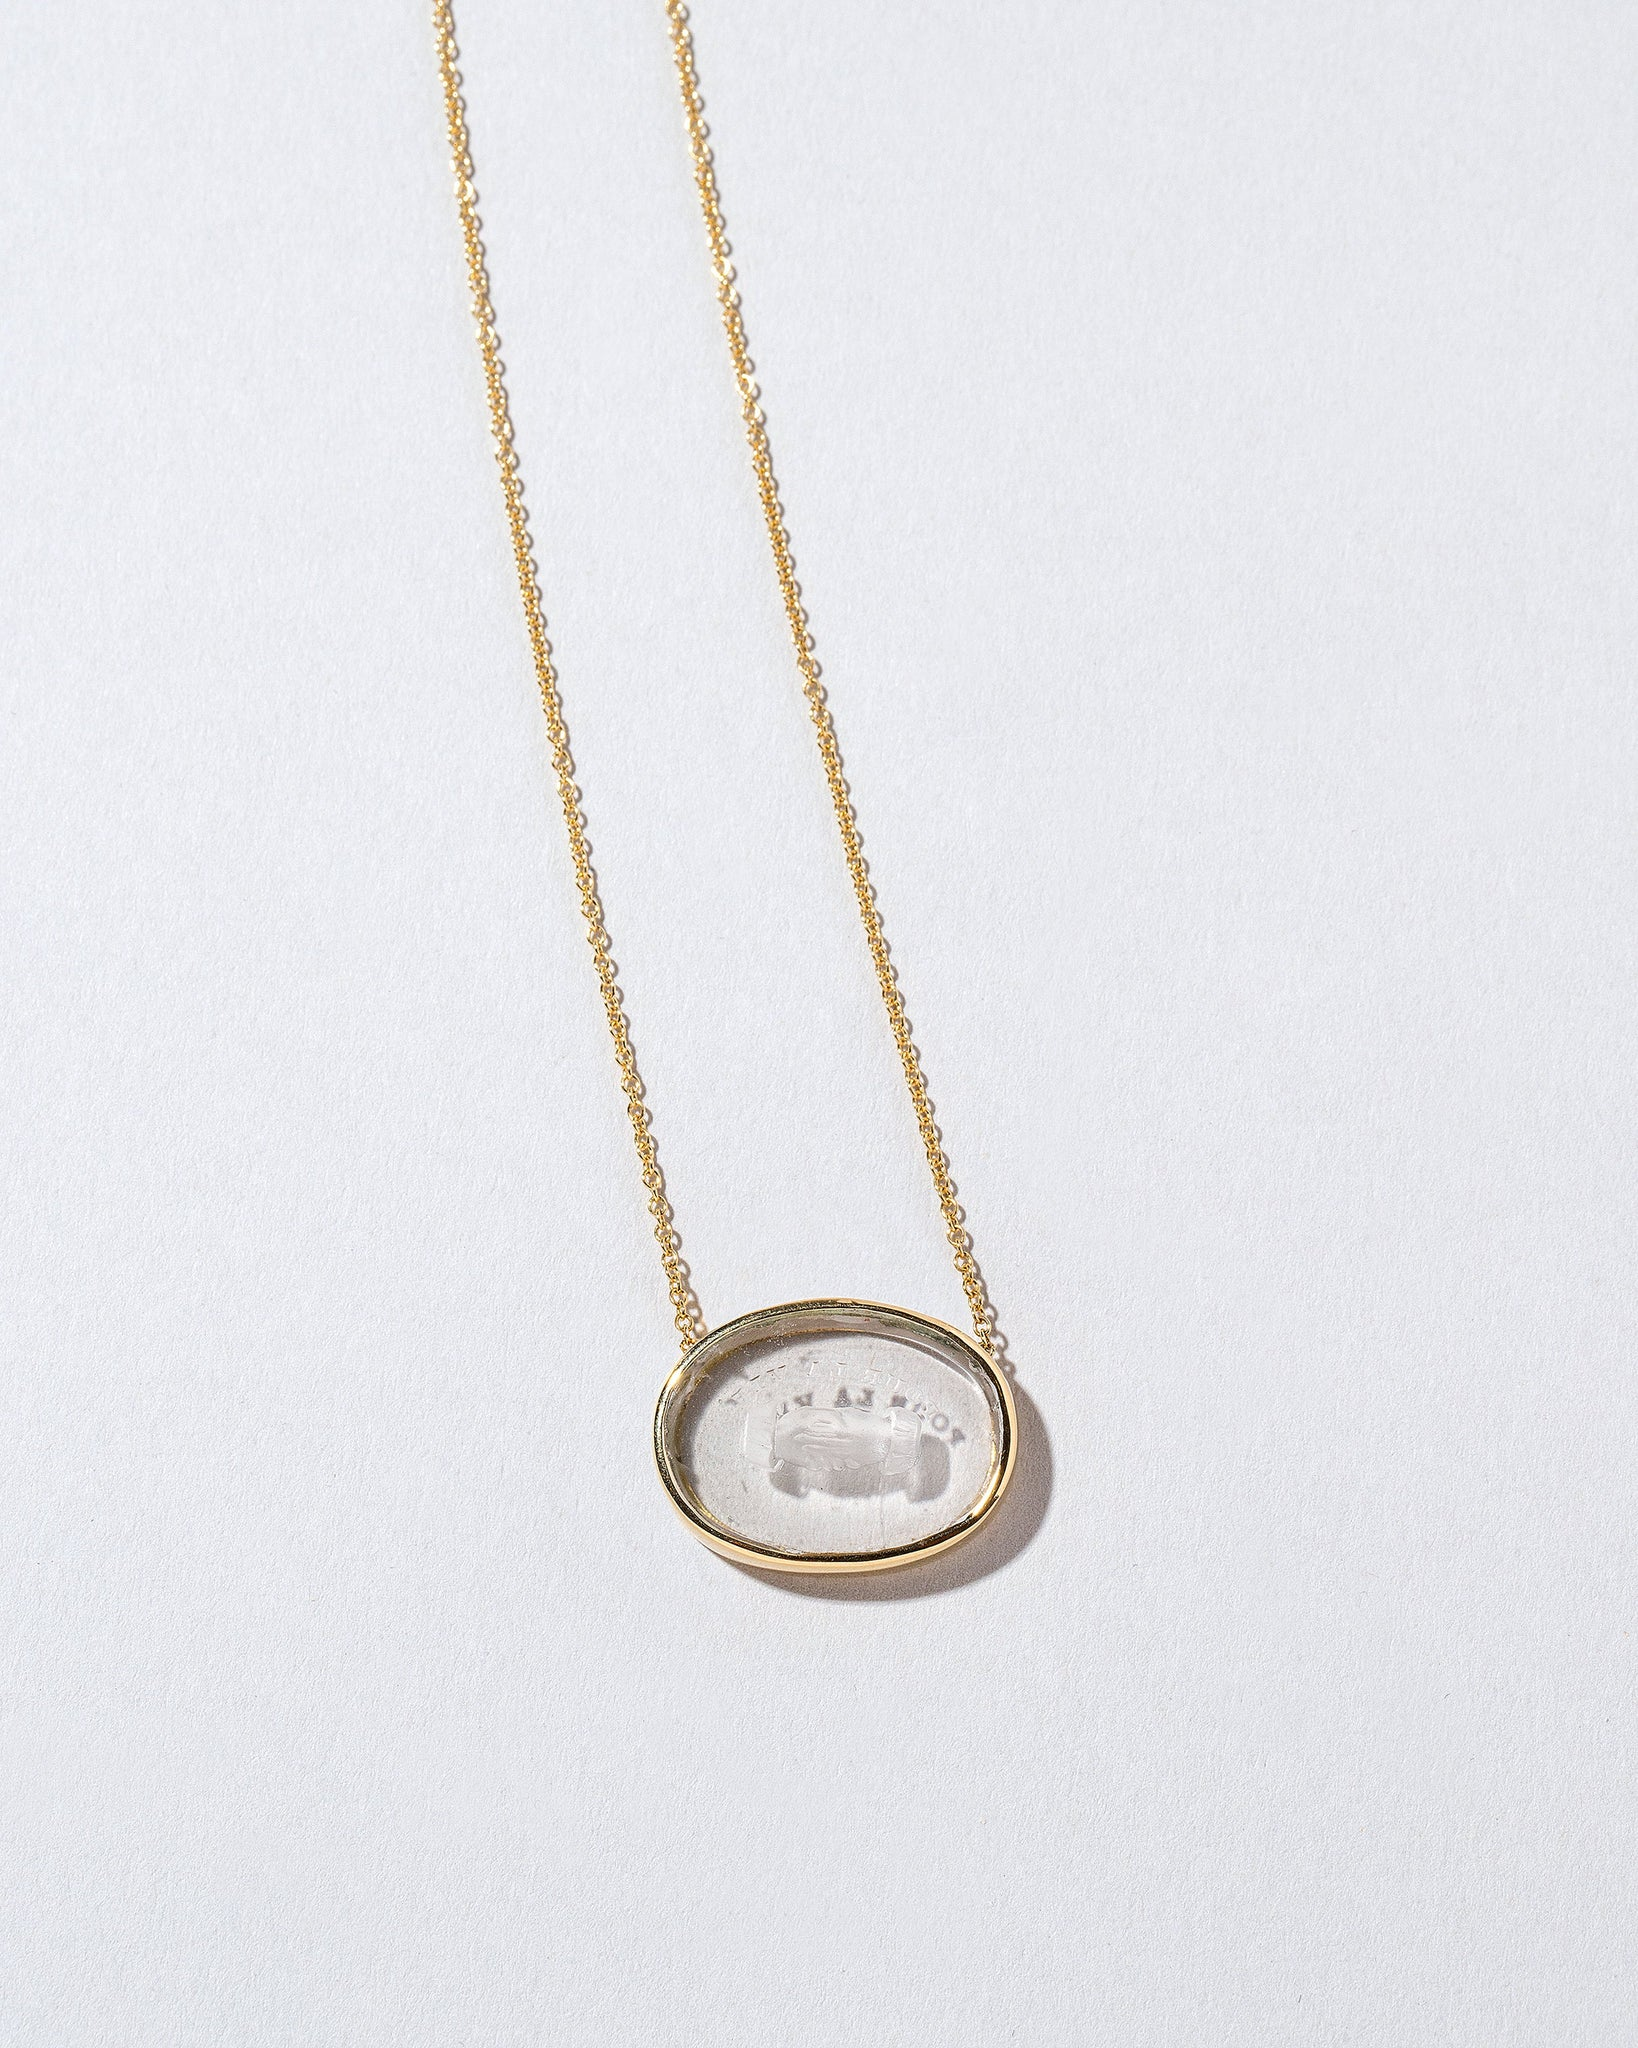 Eternity Intaglio Seal top view carving side down in necklace setting